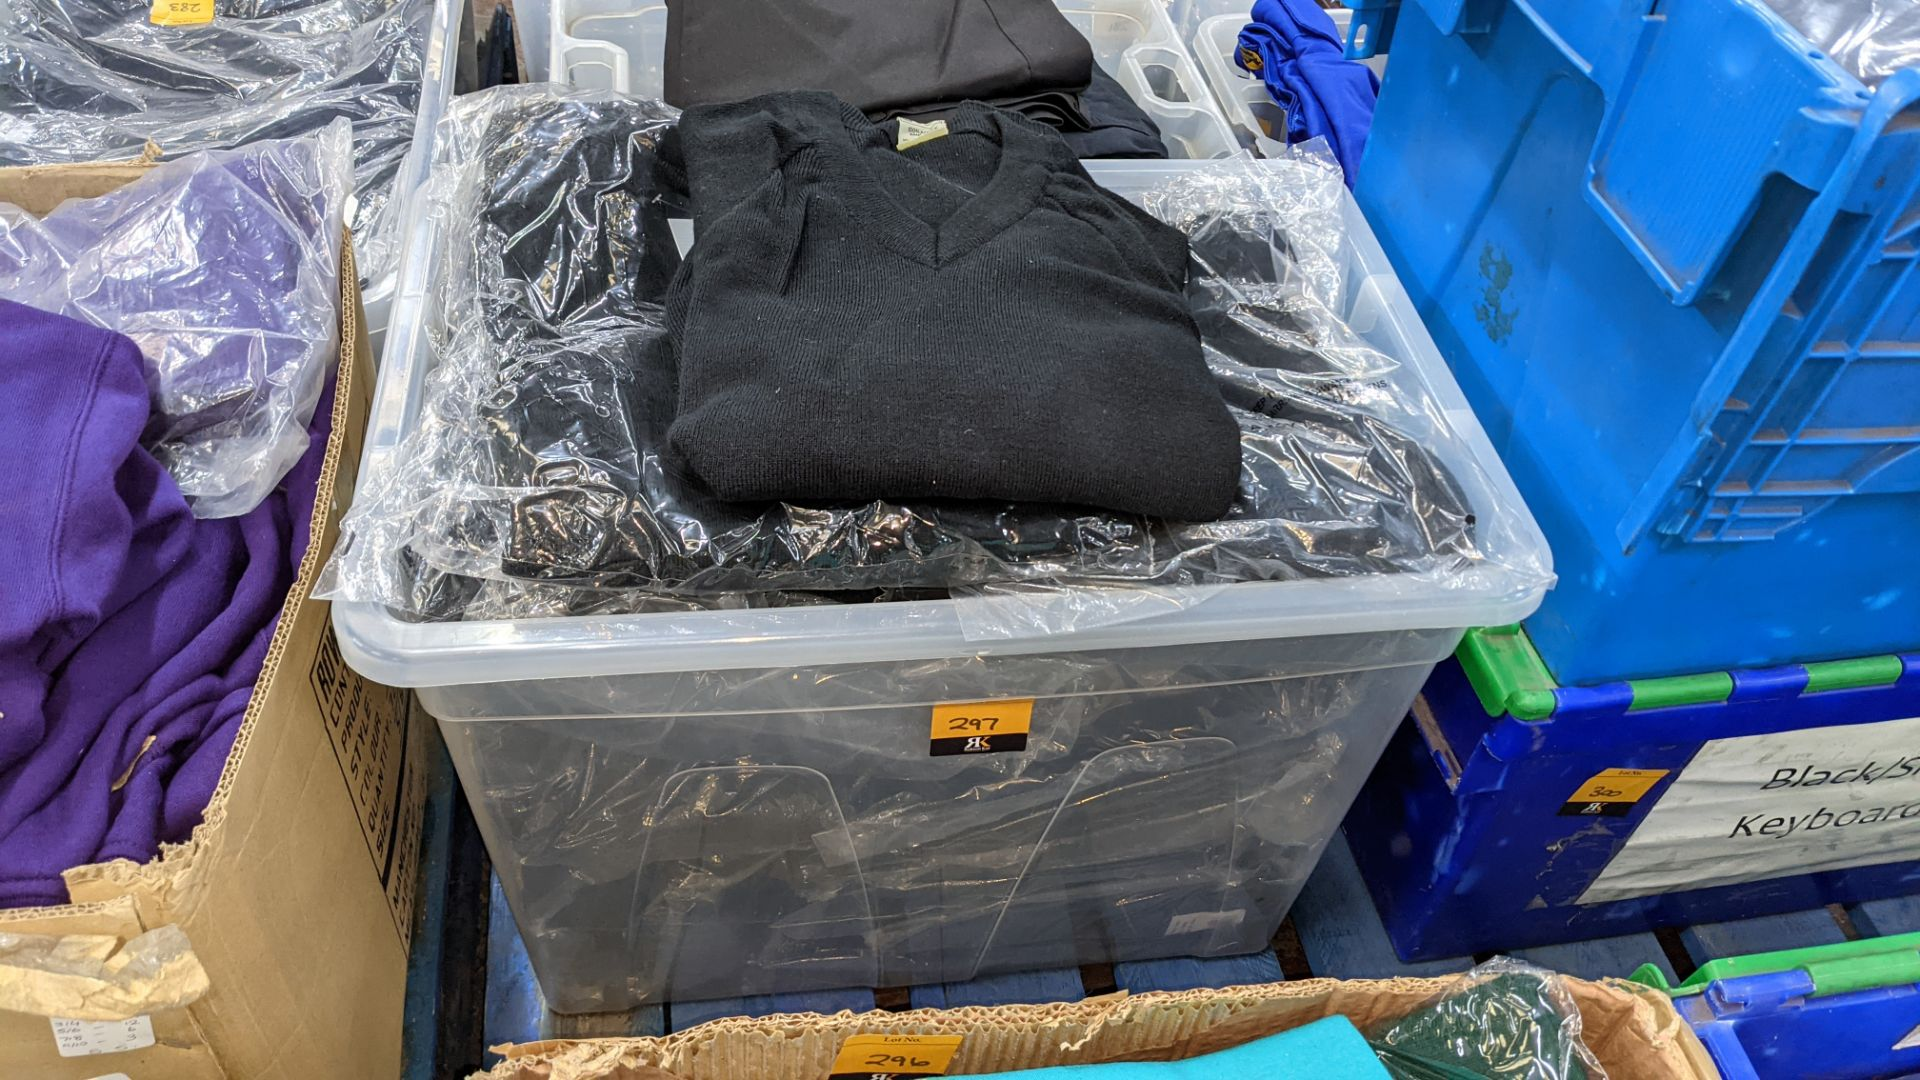 Approx 15 off children's black V neck jumpers - the contents of 1 large crate. NB crate excluded - Image 2 of 4